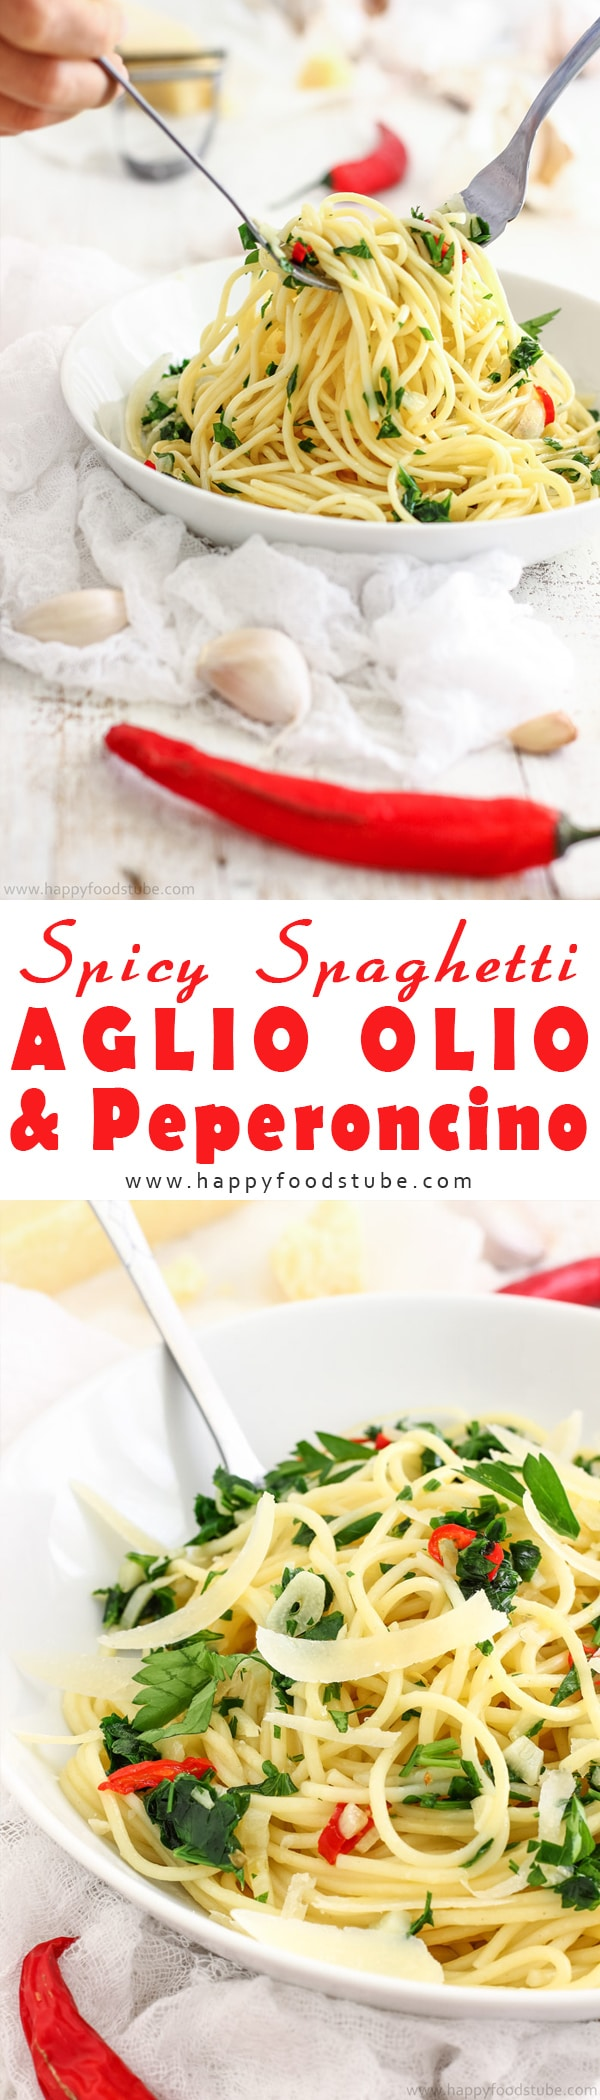 Spicy spaghetti aglio olio & peperoncino recipe. Simple & quick spaghetti dish with garlic, olive oil, chili & finished off with parmesan. A perfect weeknight dinner. Ready in 25 minutes